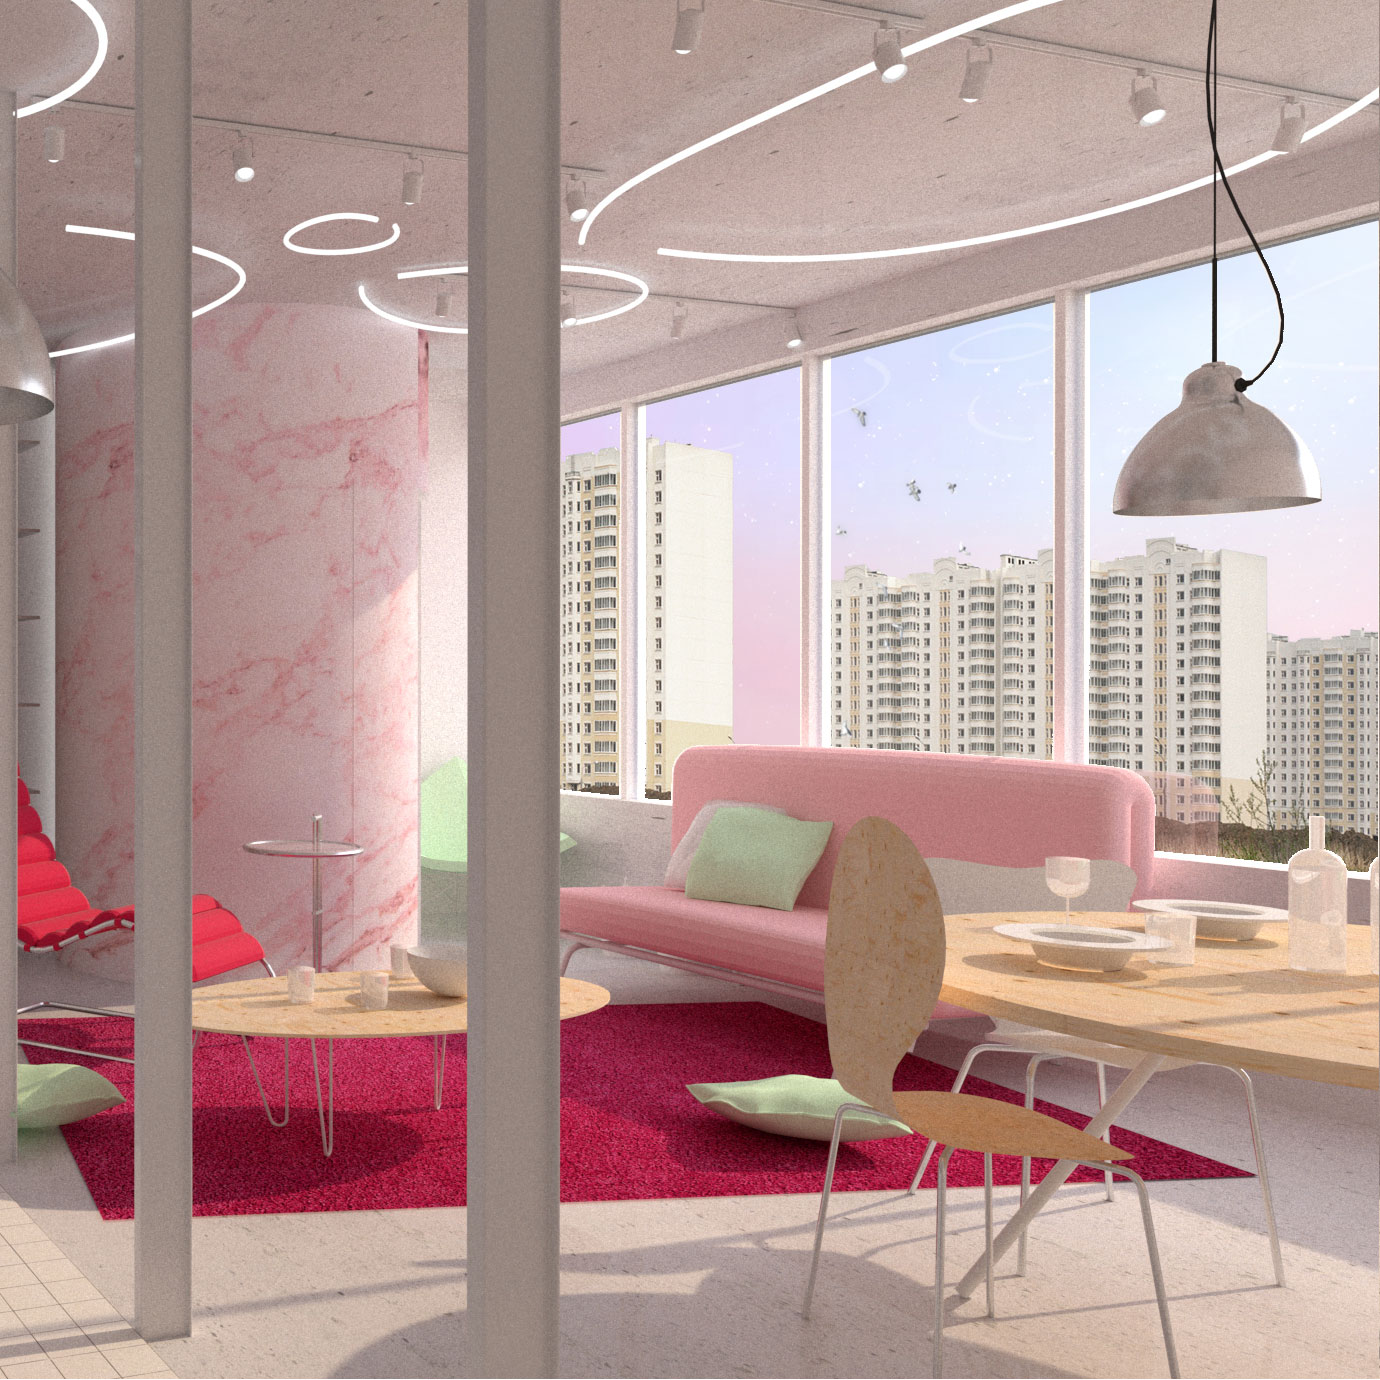 DOM project Russia Pitarch Image Interior 6